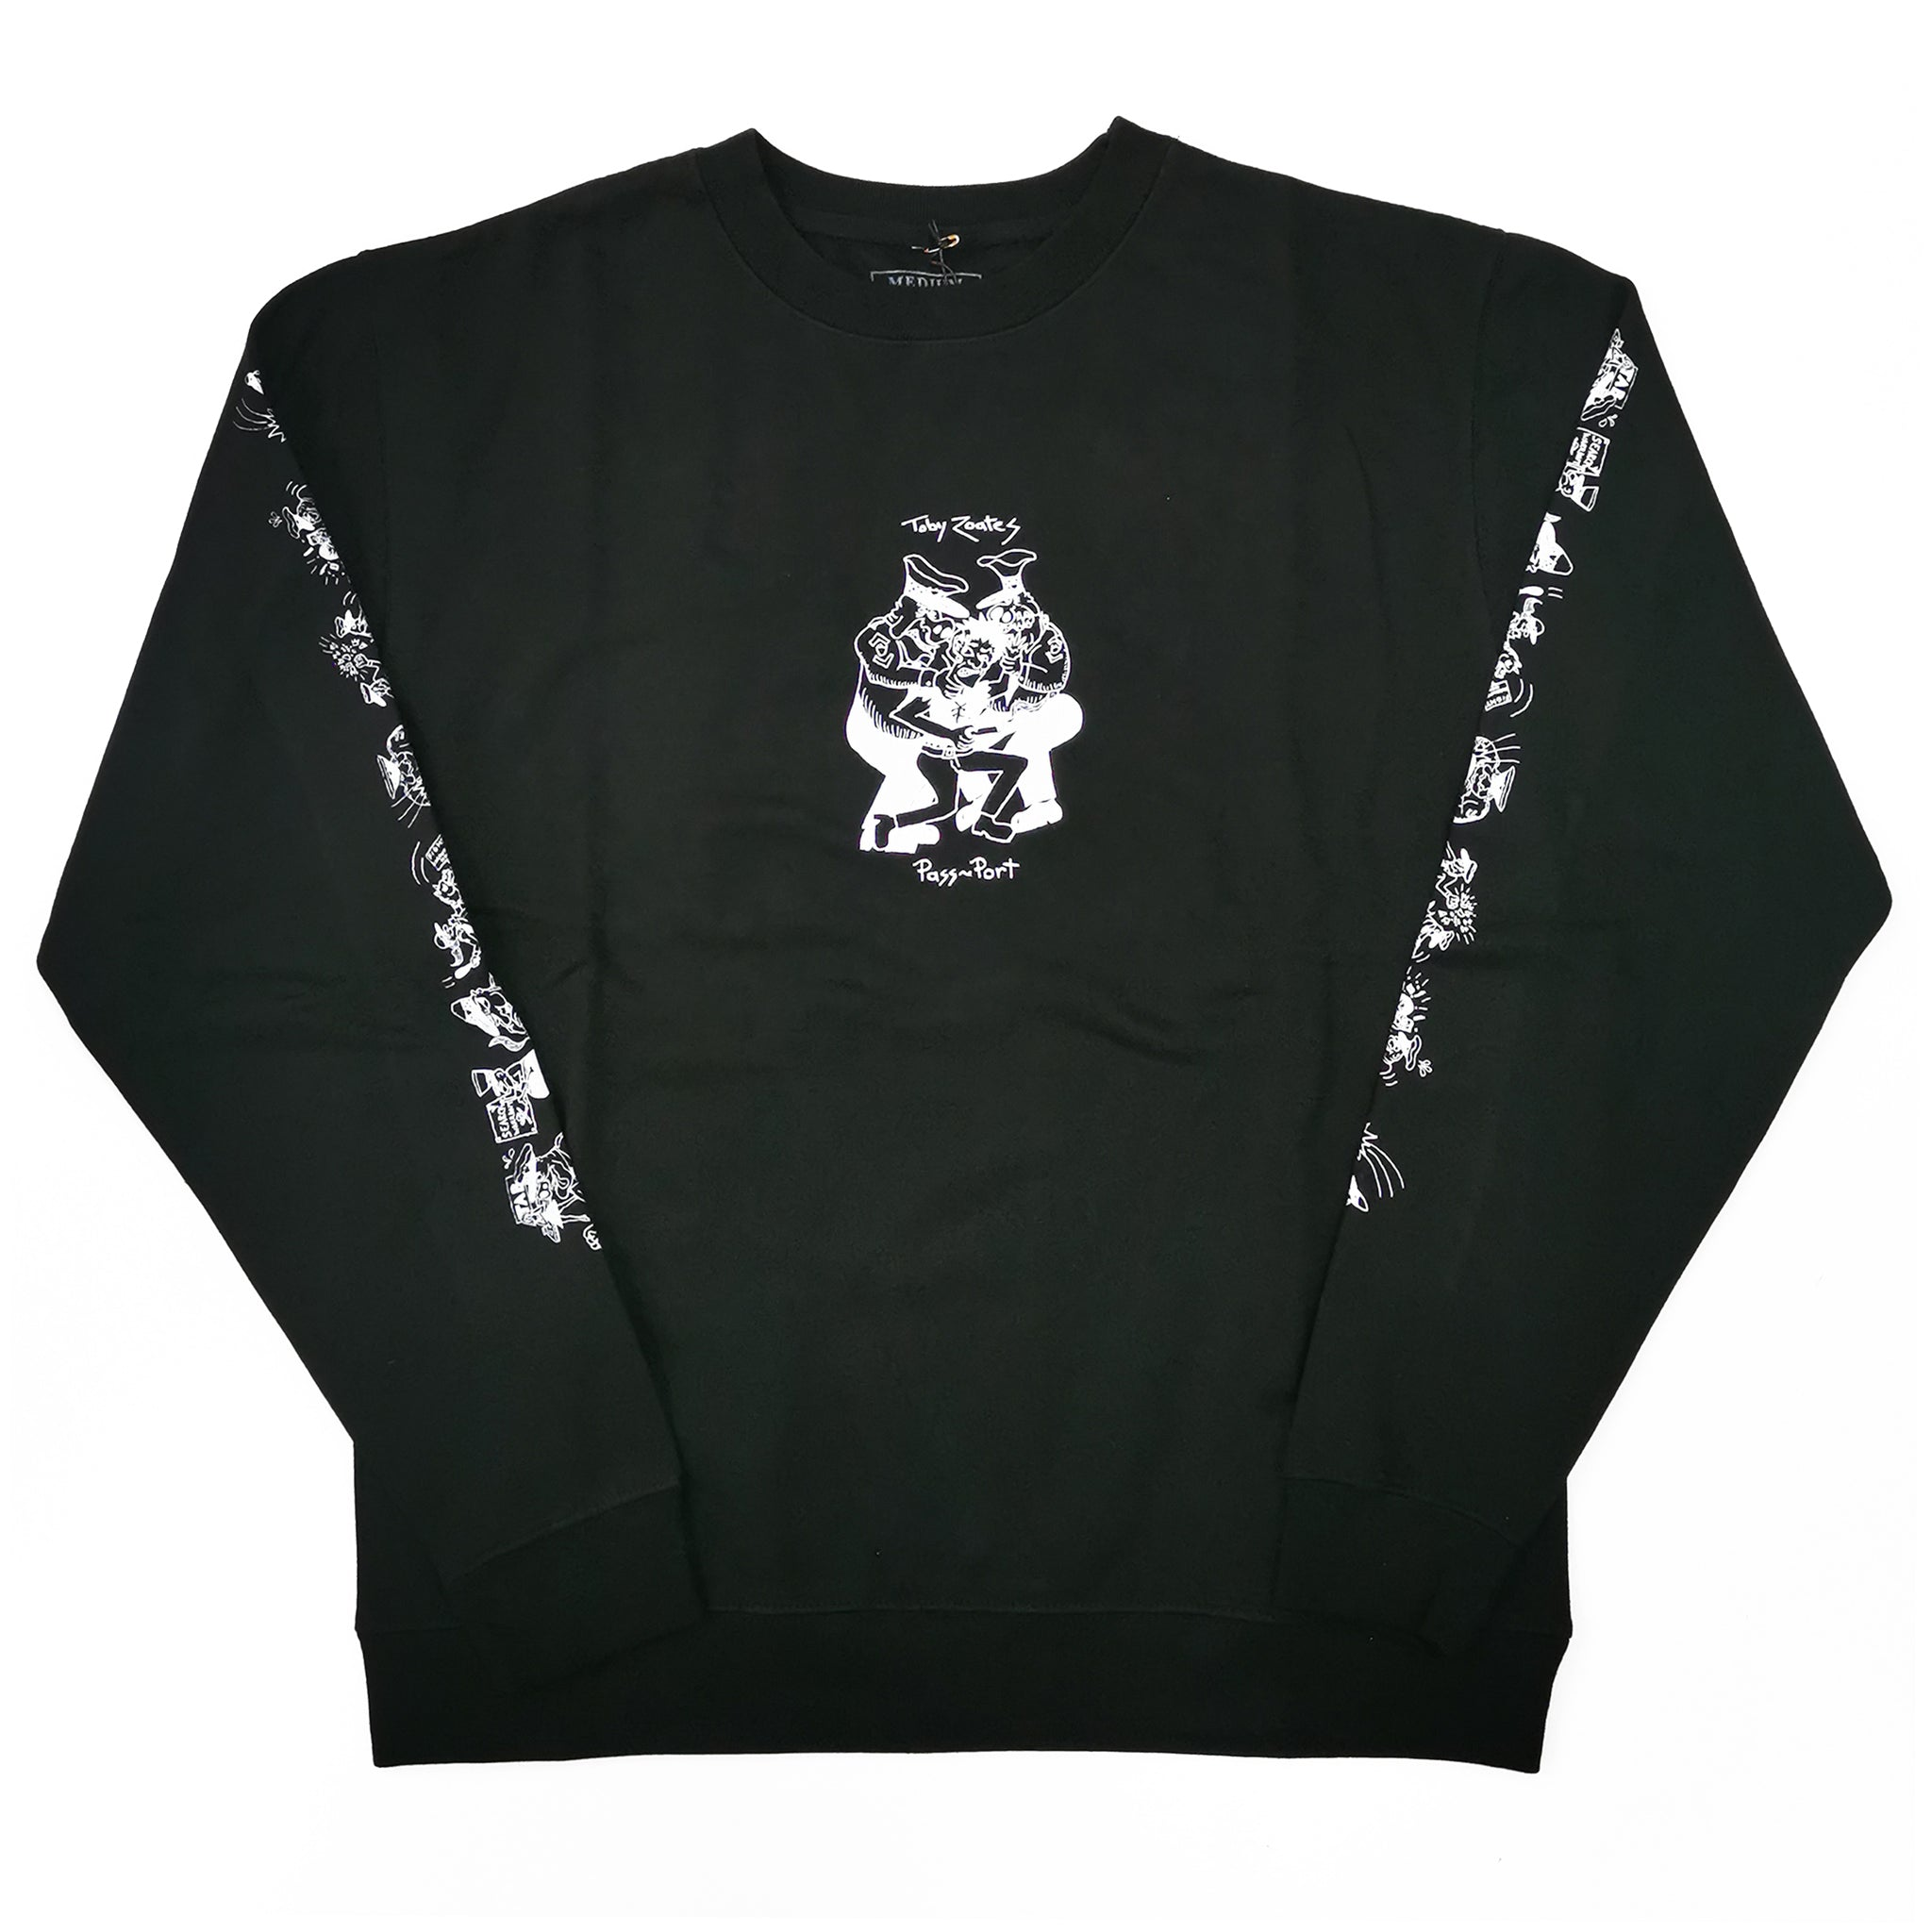 PASSPORT - TOBY ZOATS COPPERS LONG SLEEVE - BLACK